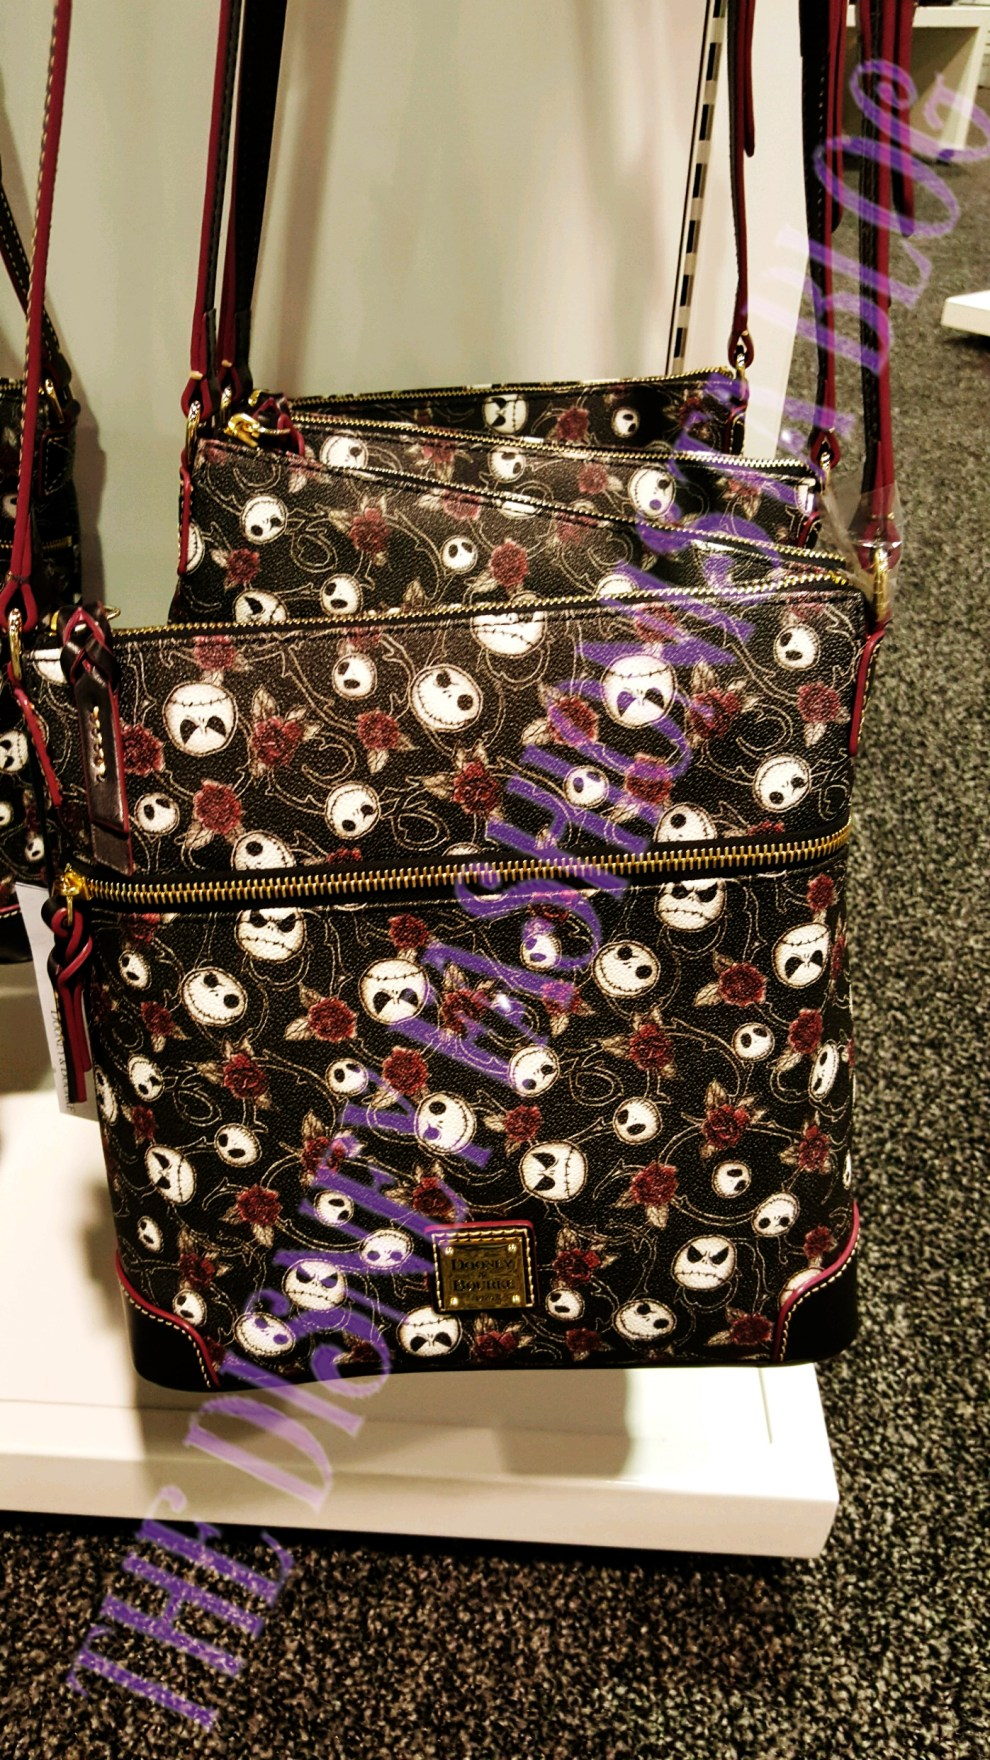 Nightmare Before Christmas Dooney & Bourke bags at D23 Expo 2017